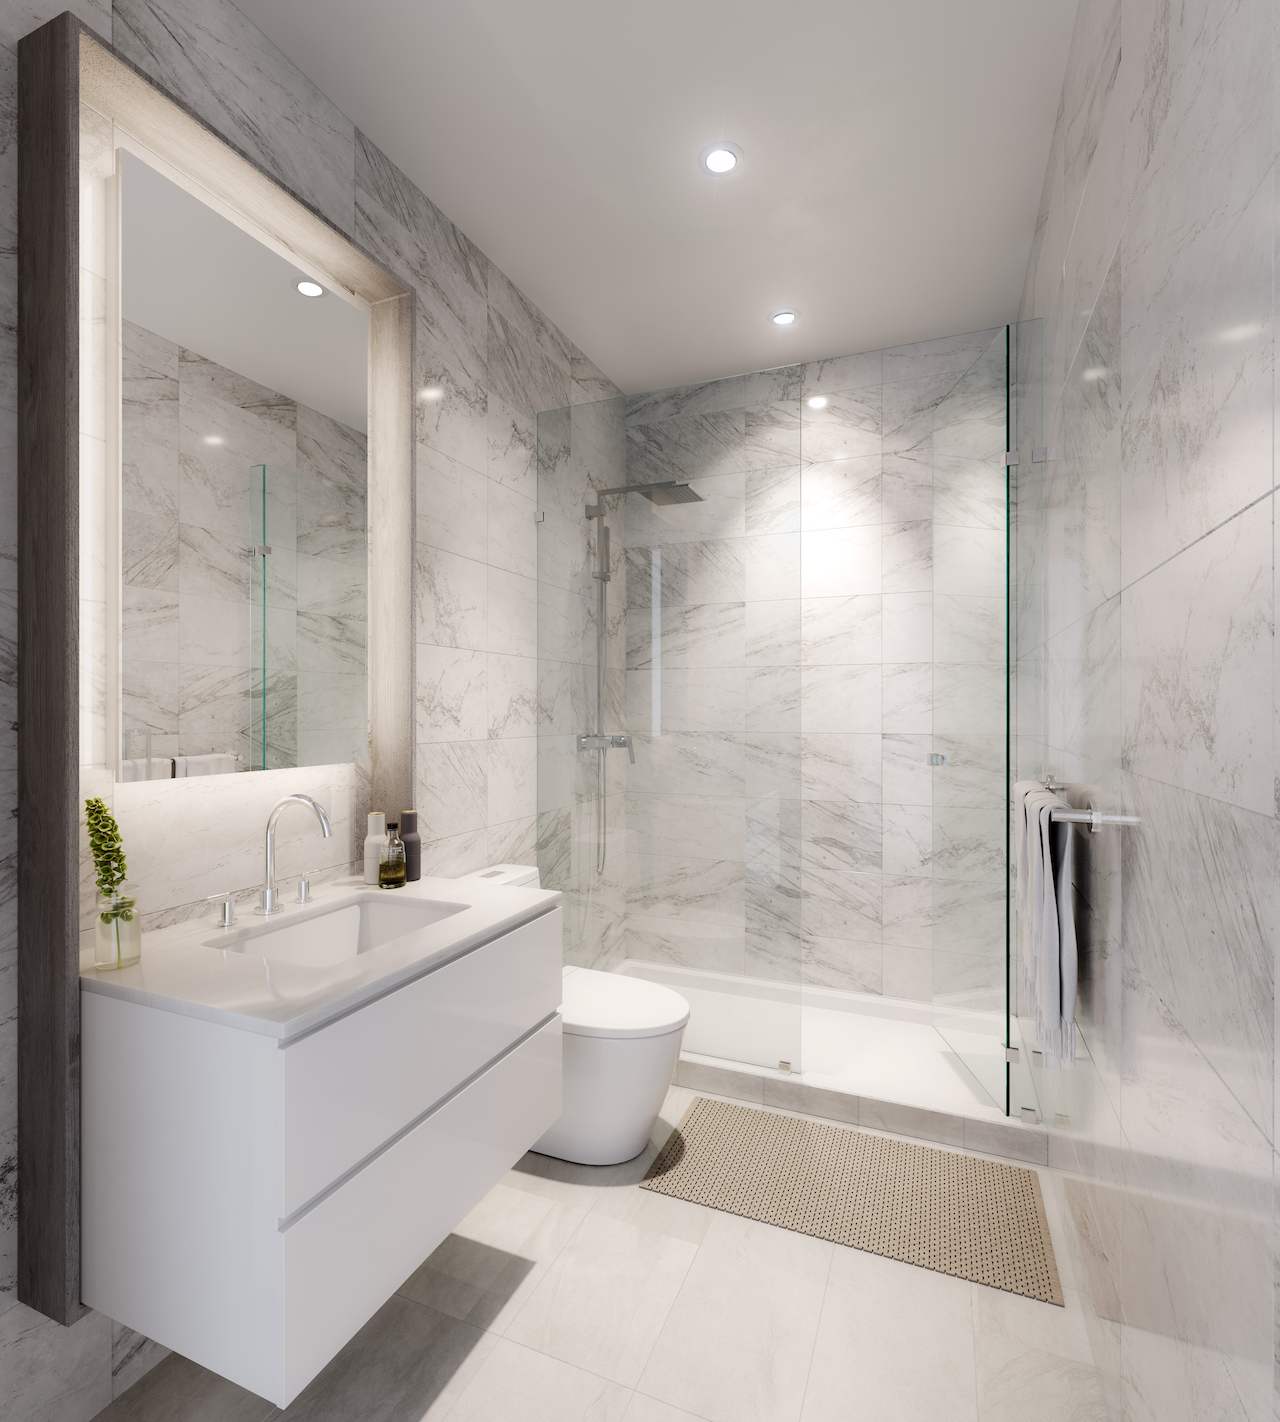 Rendering of the Bond on Yonge townhome ensuite bathroom with marble features.